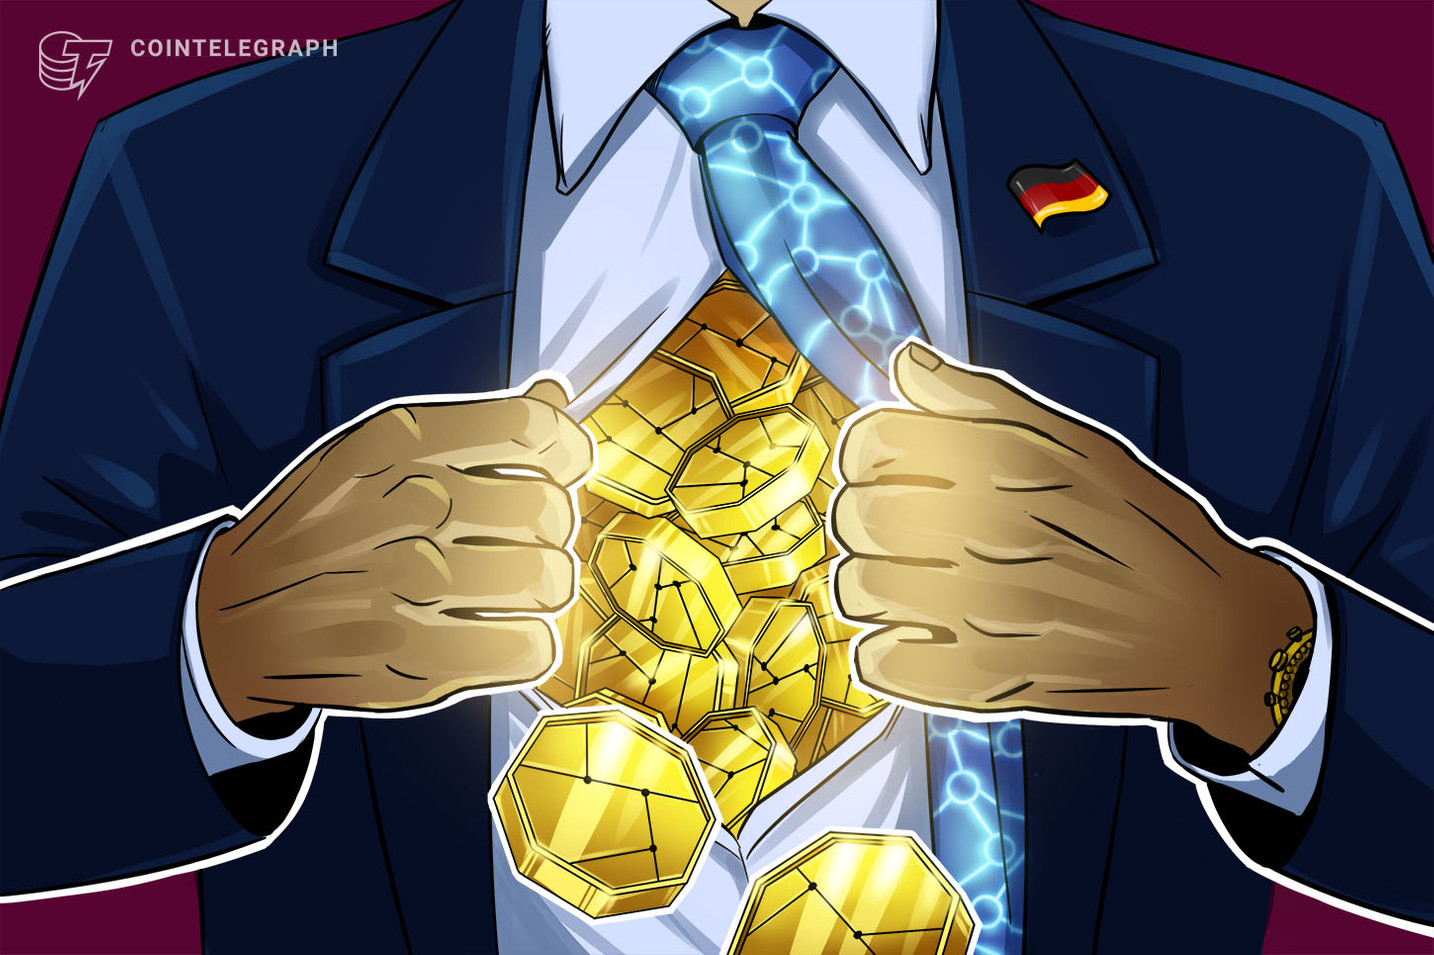 Germany's Second-Top Exchange Börse Stuttgart Lists Ripple and Litecoin-Based ETNs